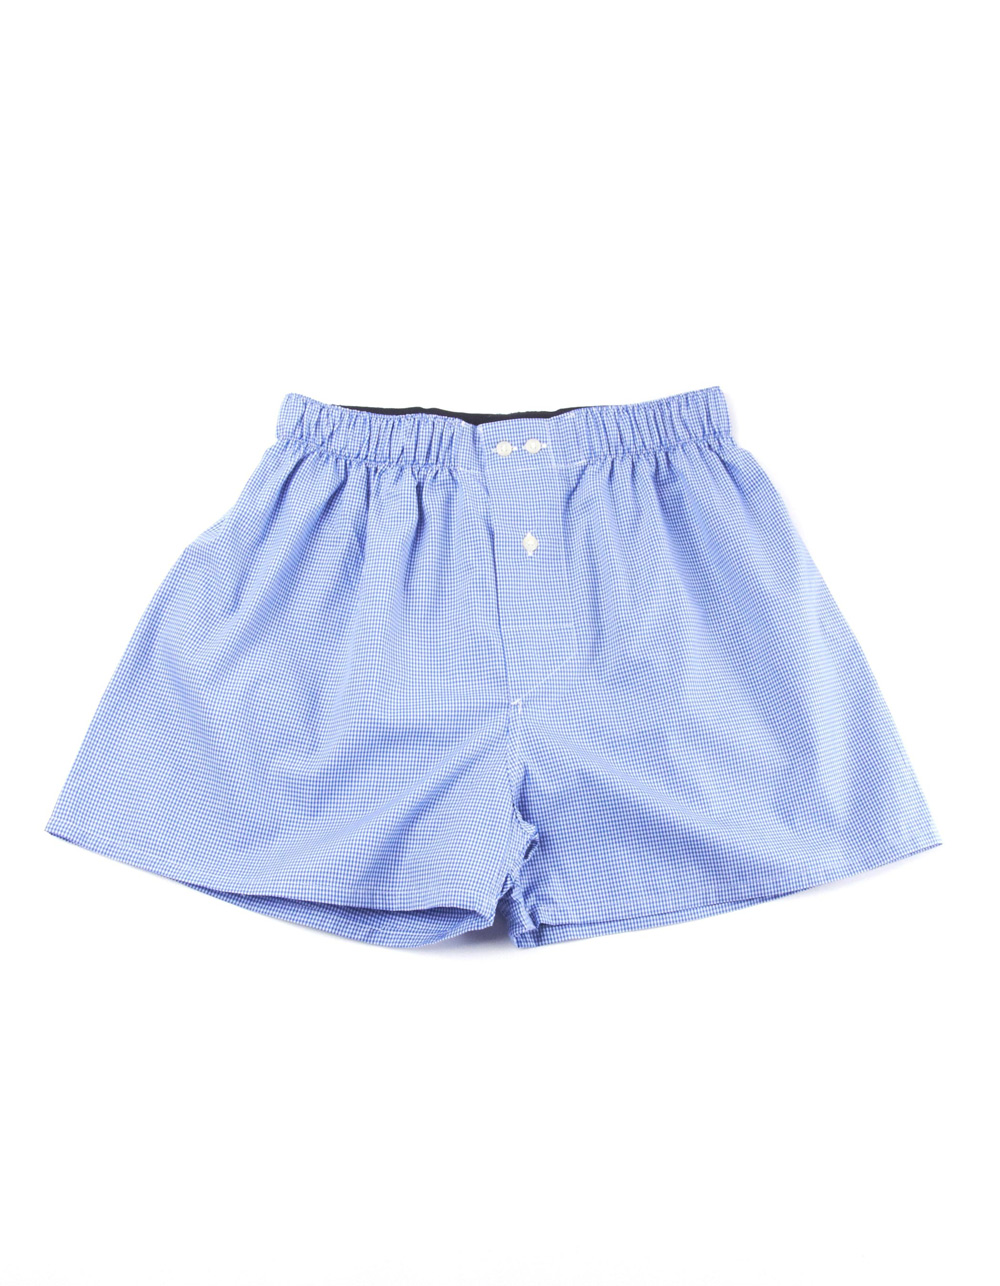 Blue micro plain boxer shorts